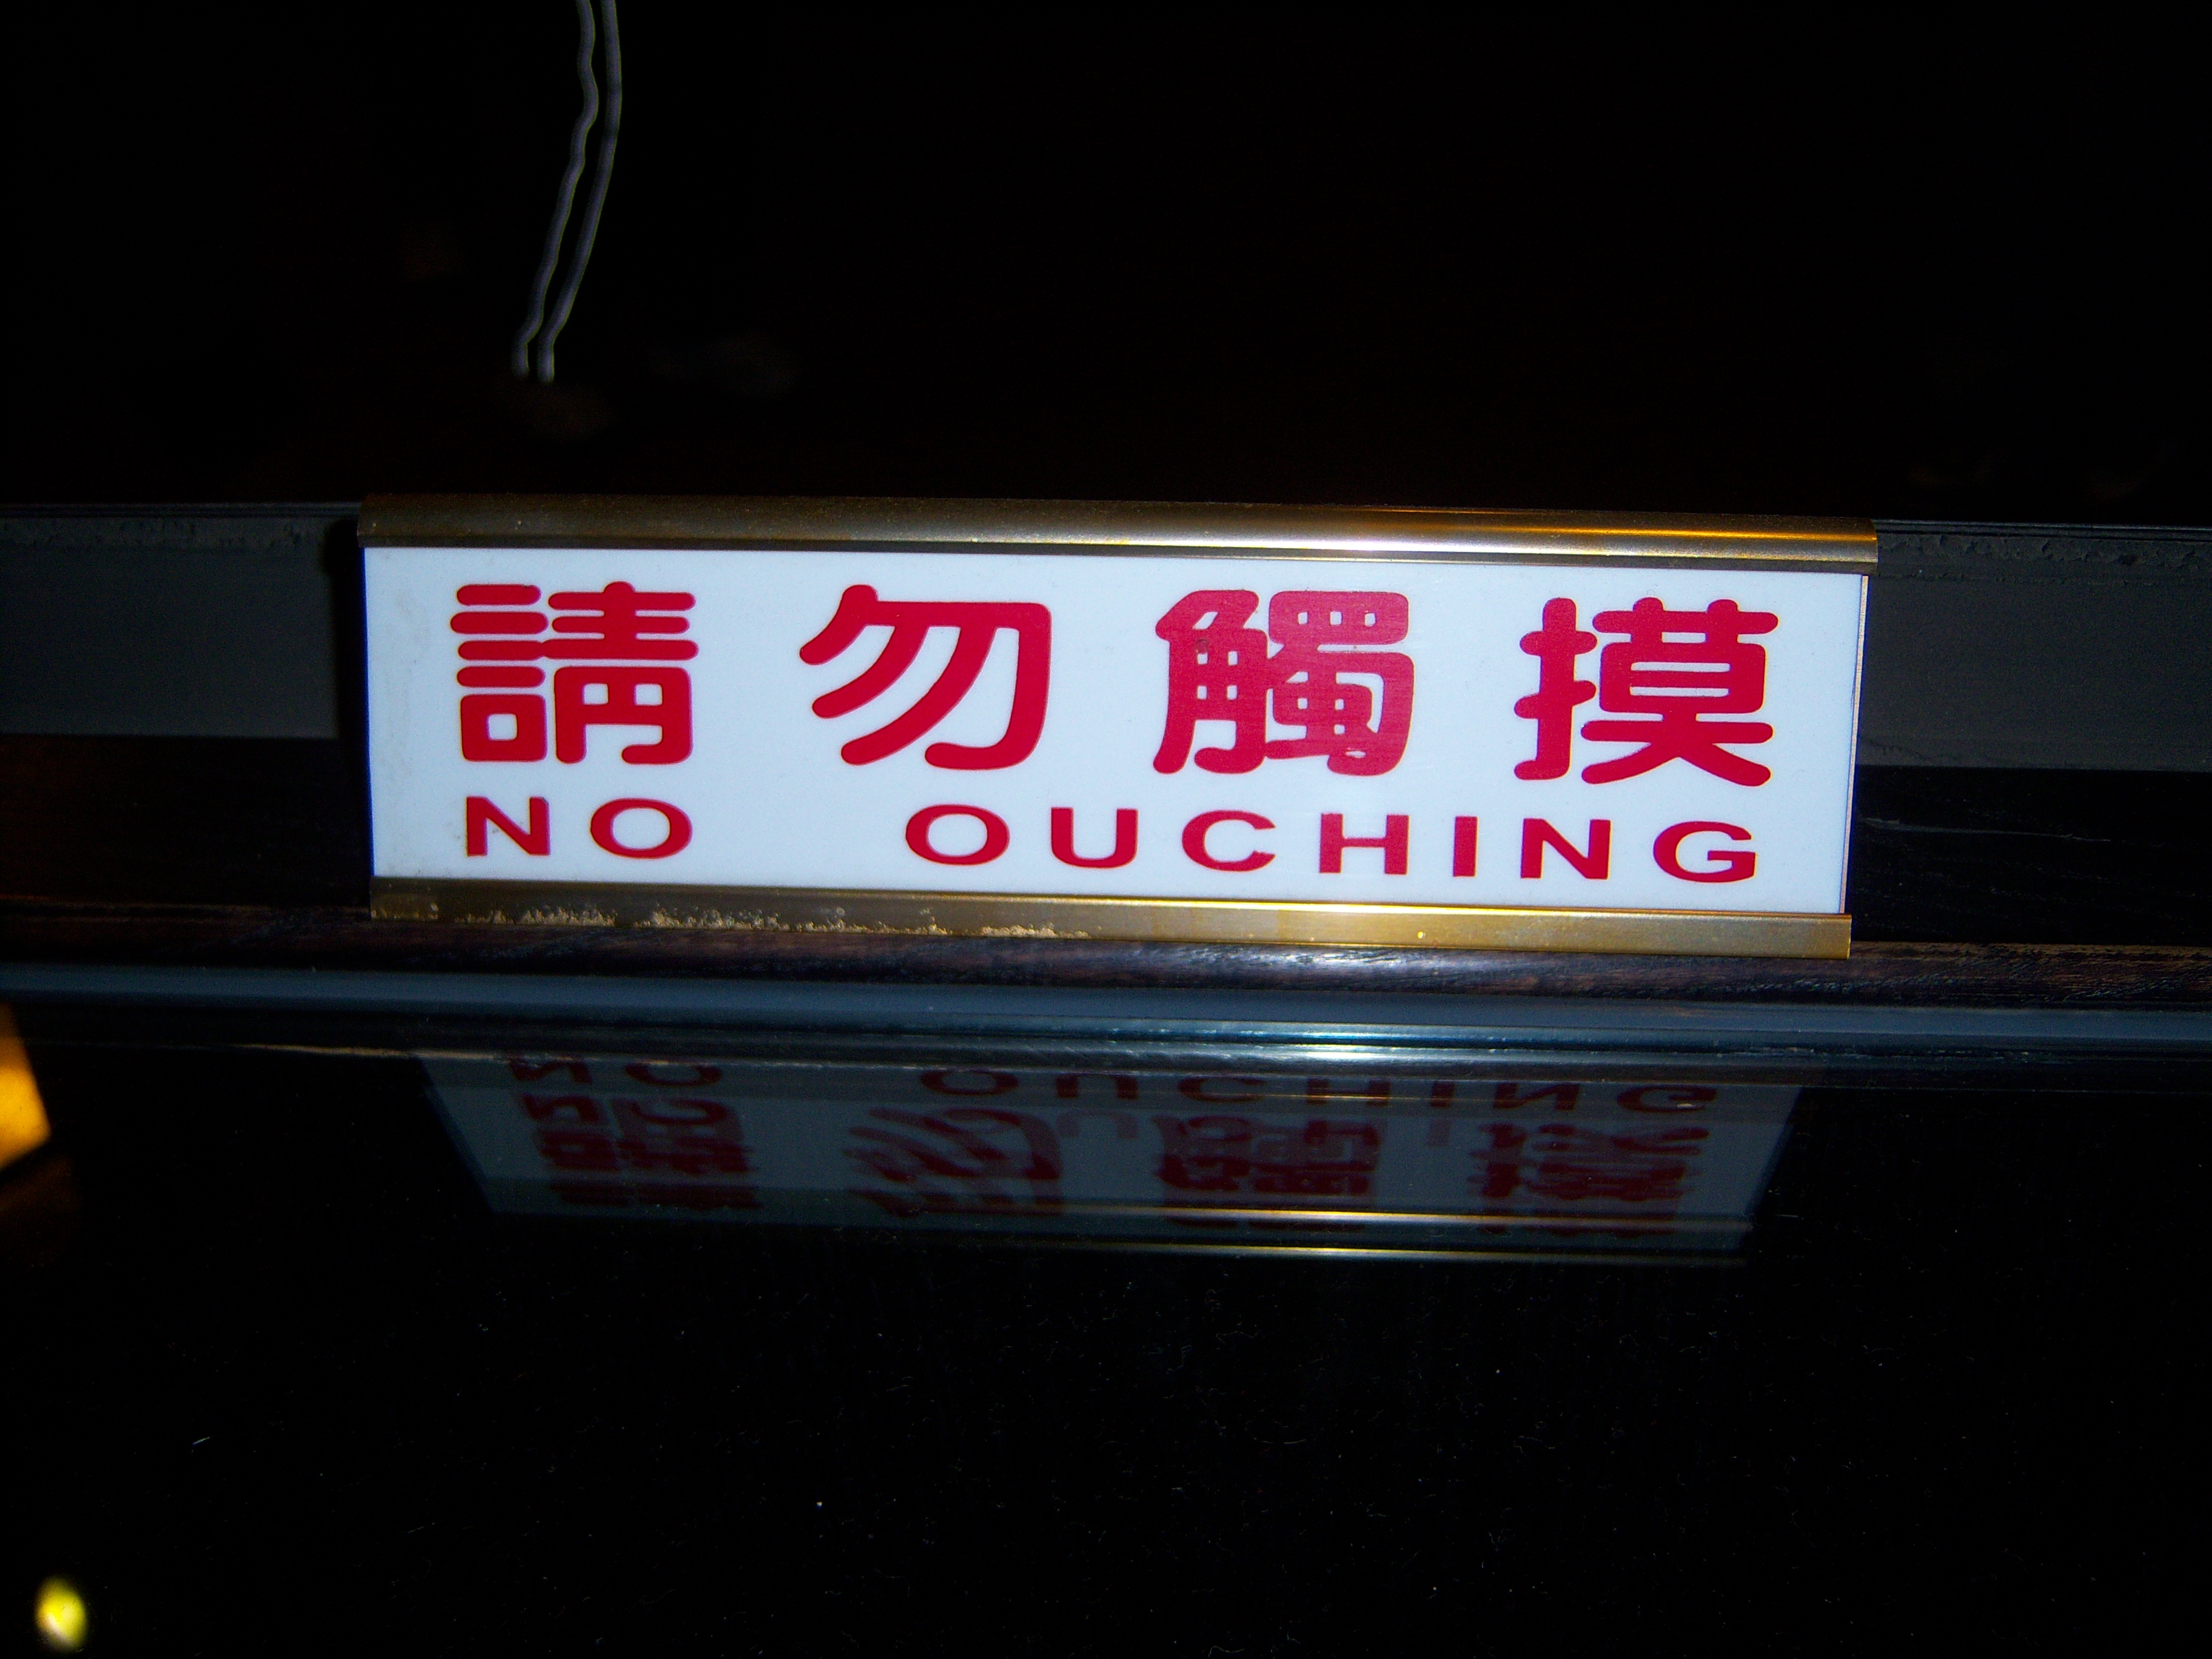 No Ouching